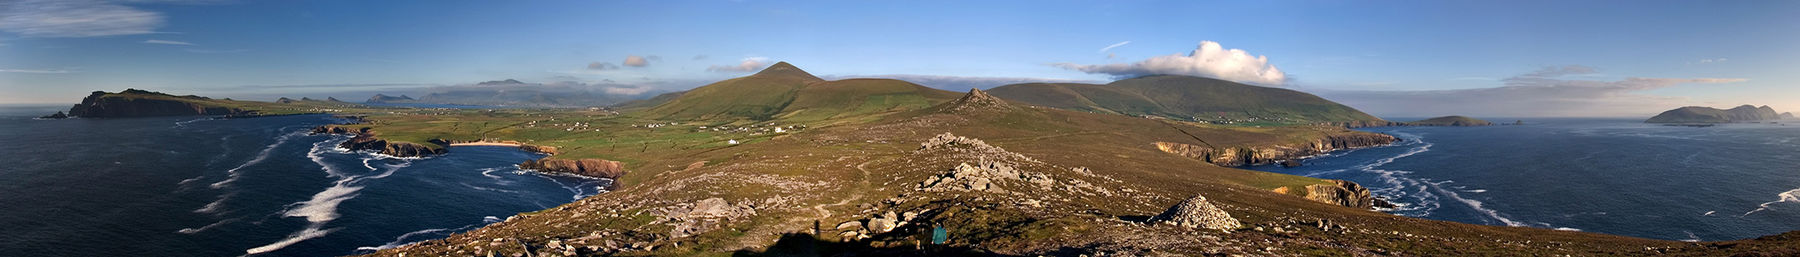 Dingle peninsula banner.jpg